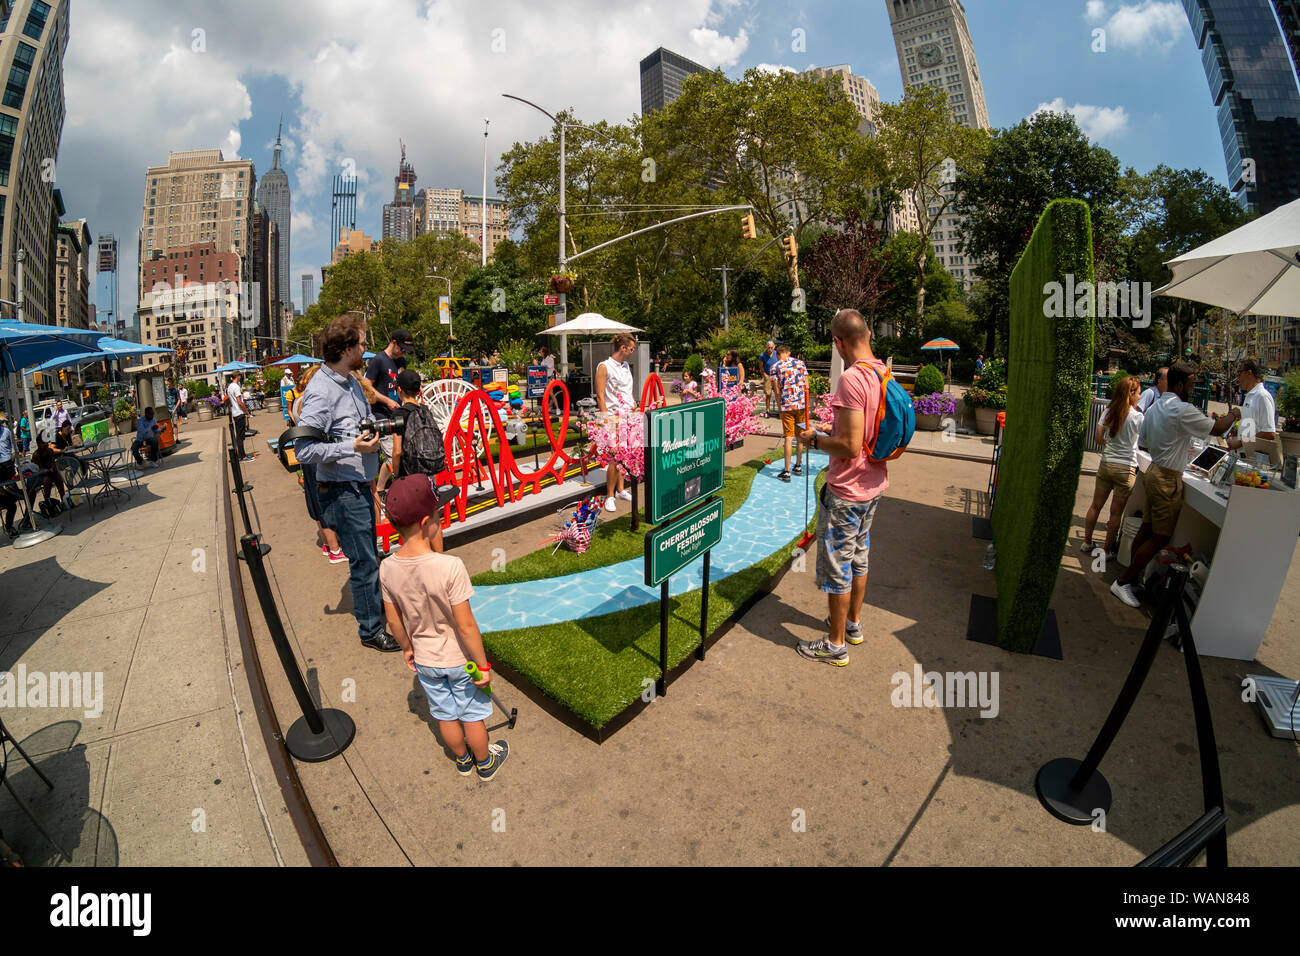 Great Event Stock Photos & Great Event Stock Images - Alamy